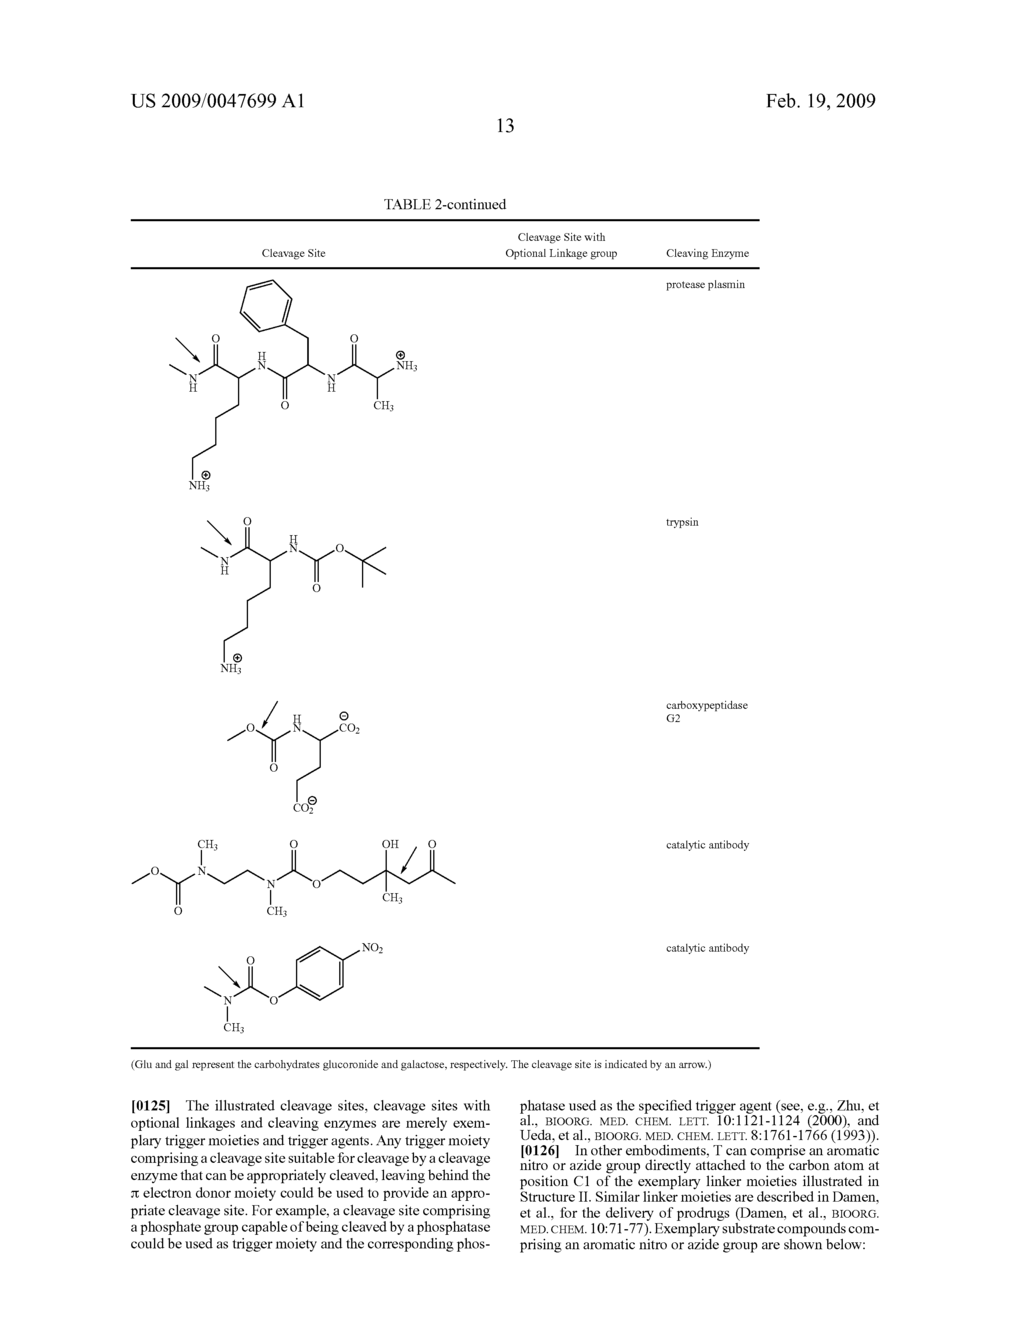 FLUOROGENIC ENZYME ACTIVITY ASSAY METHODS AND COMPOSITIONS USING FRAGMENTABLE LINKERS - diagram, schematic, and image 35